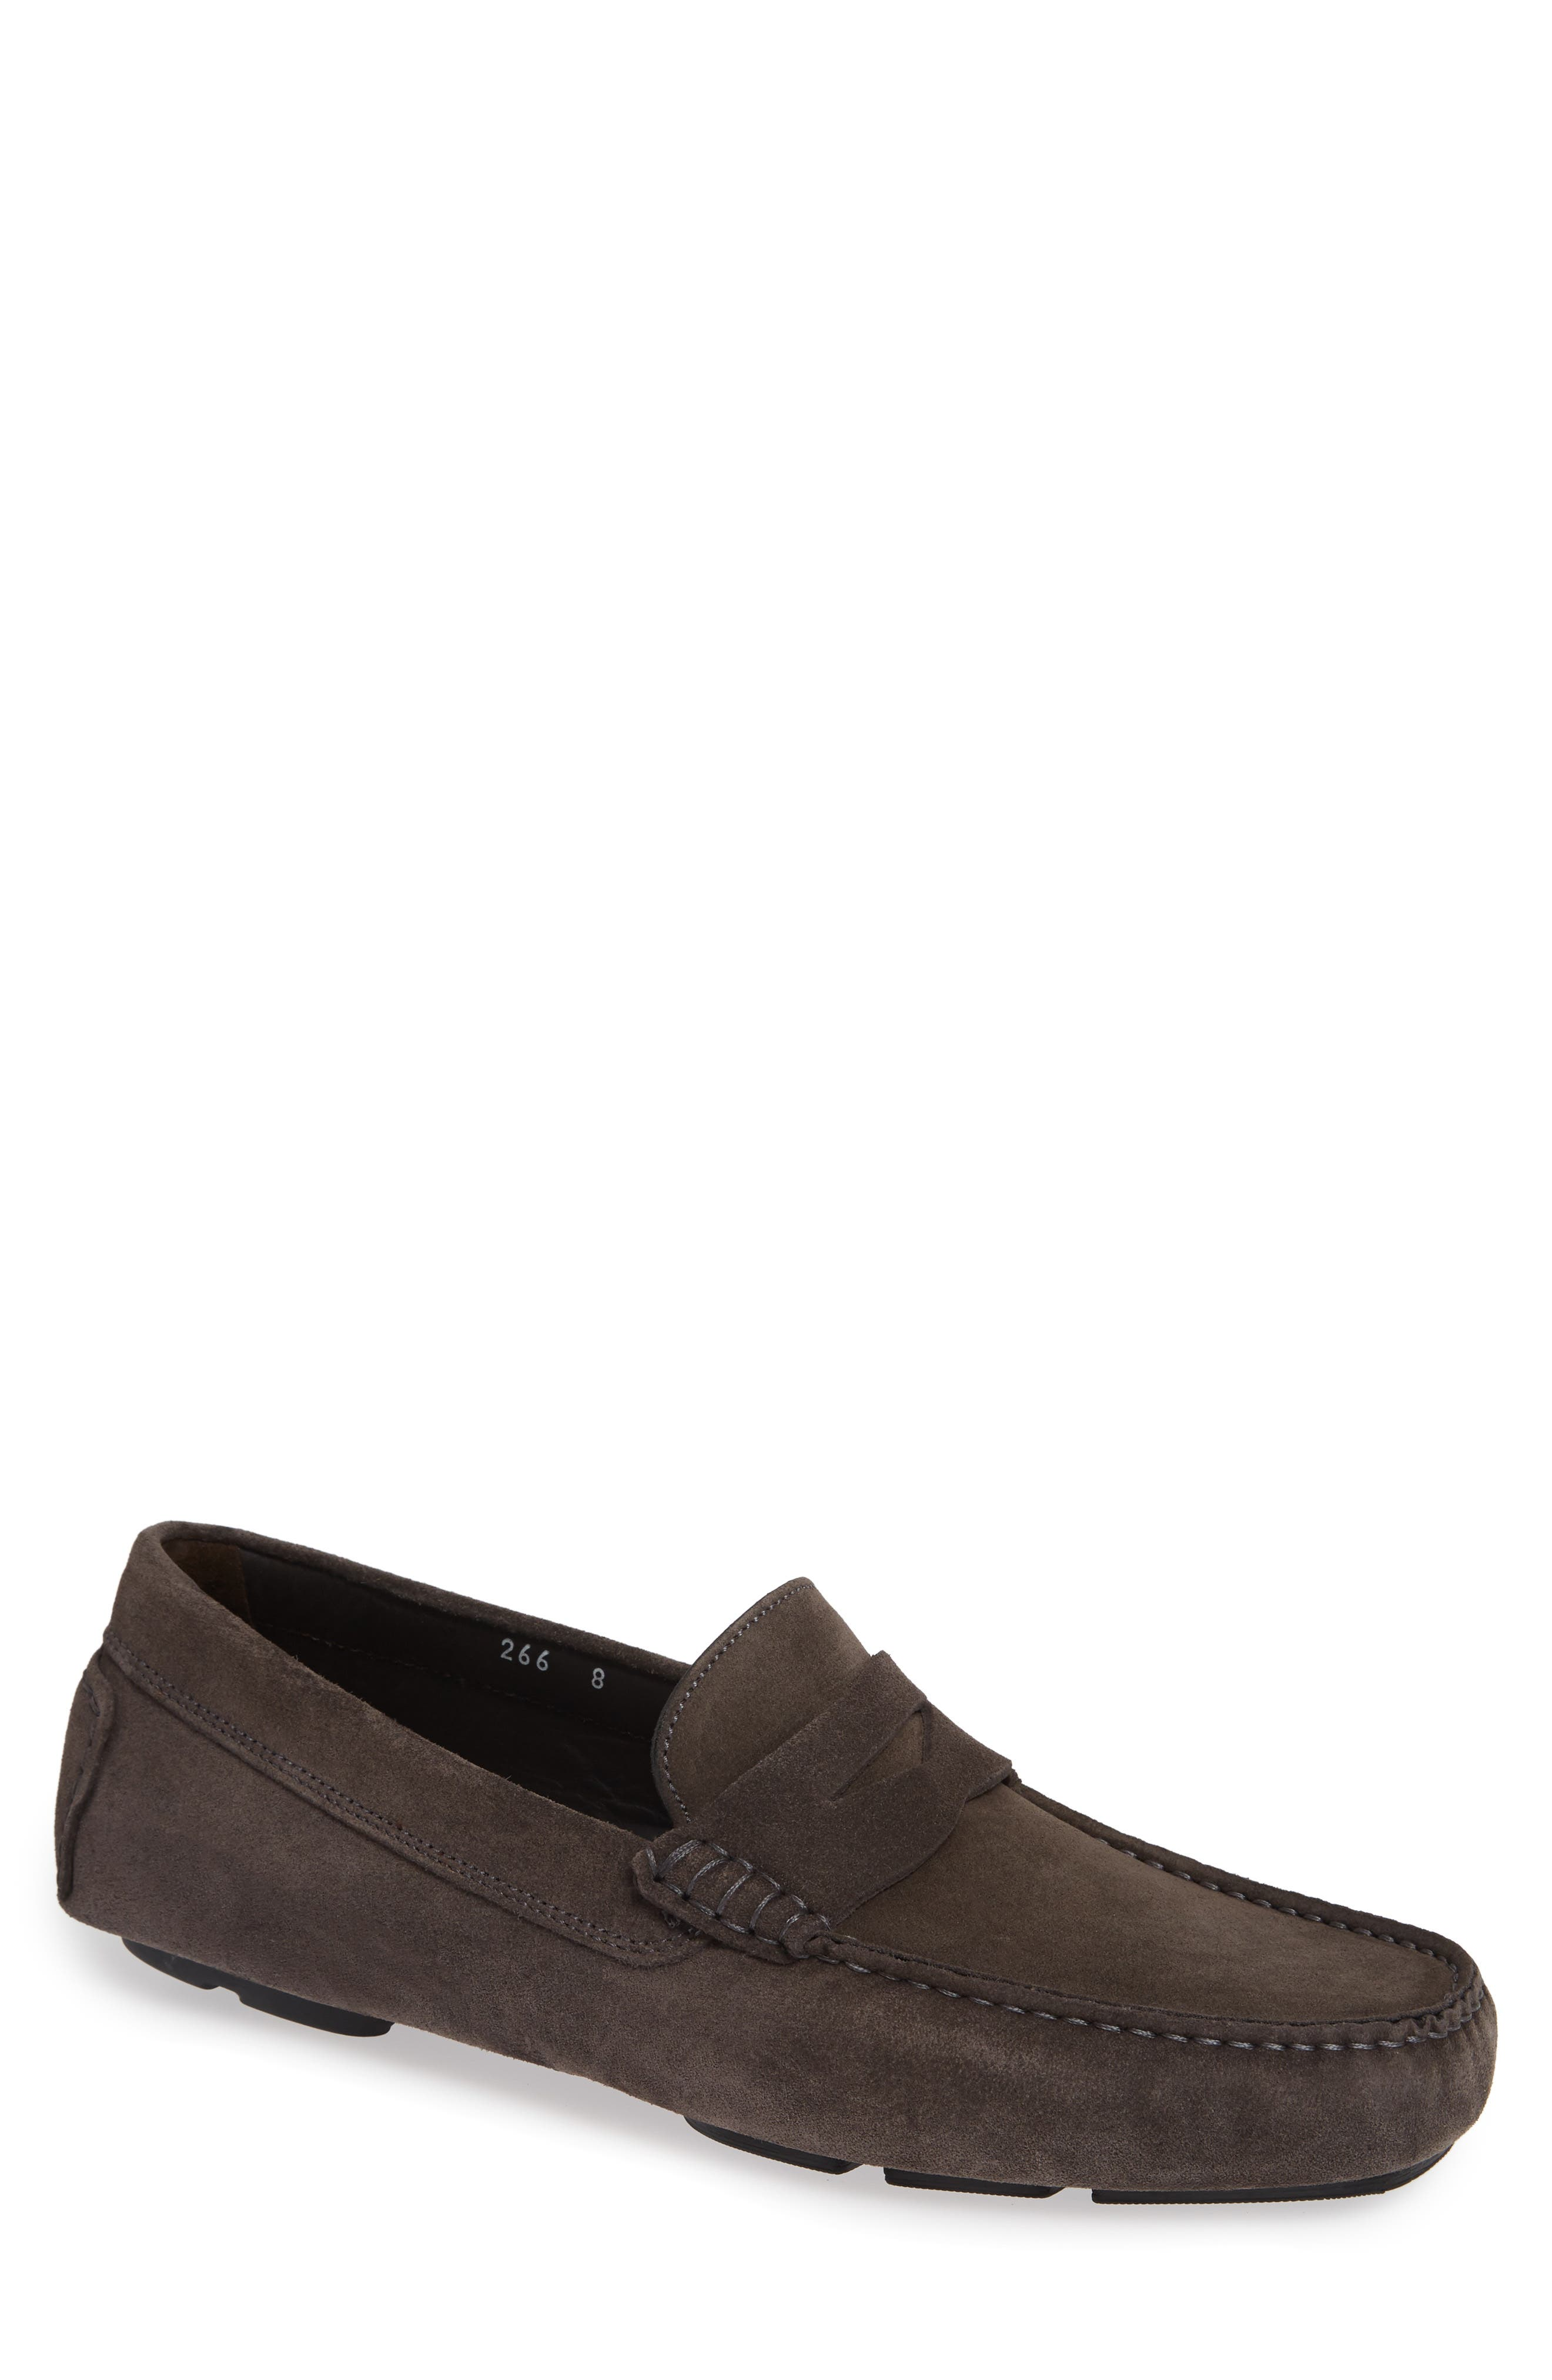 Jackson Penny Driving Loafer,                             Main thumbnail 1, color,                             GREY LEATHER